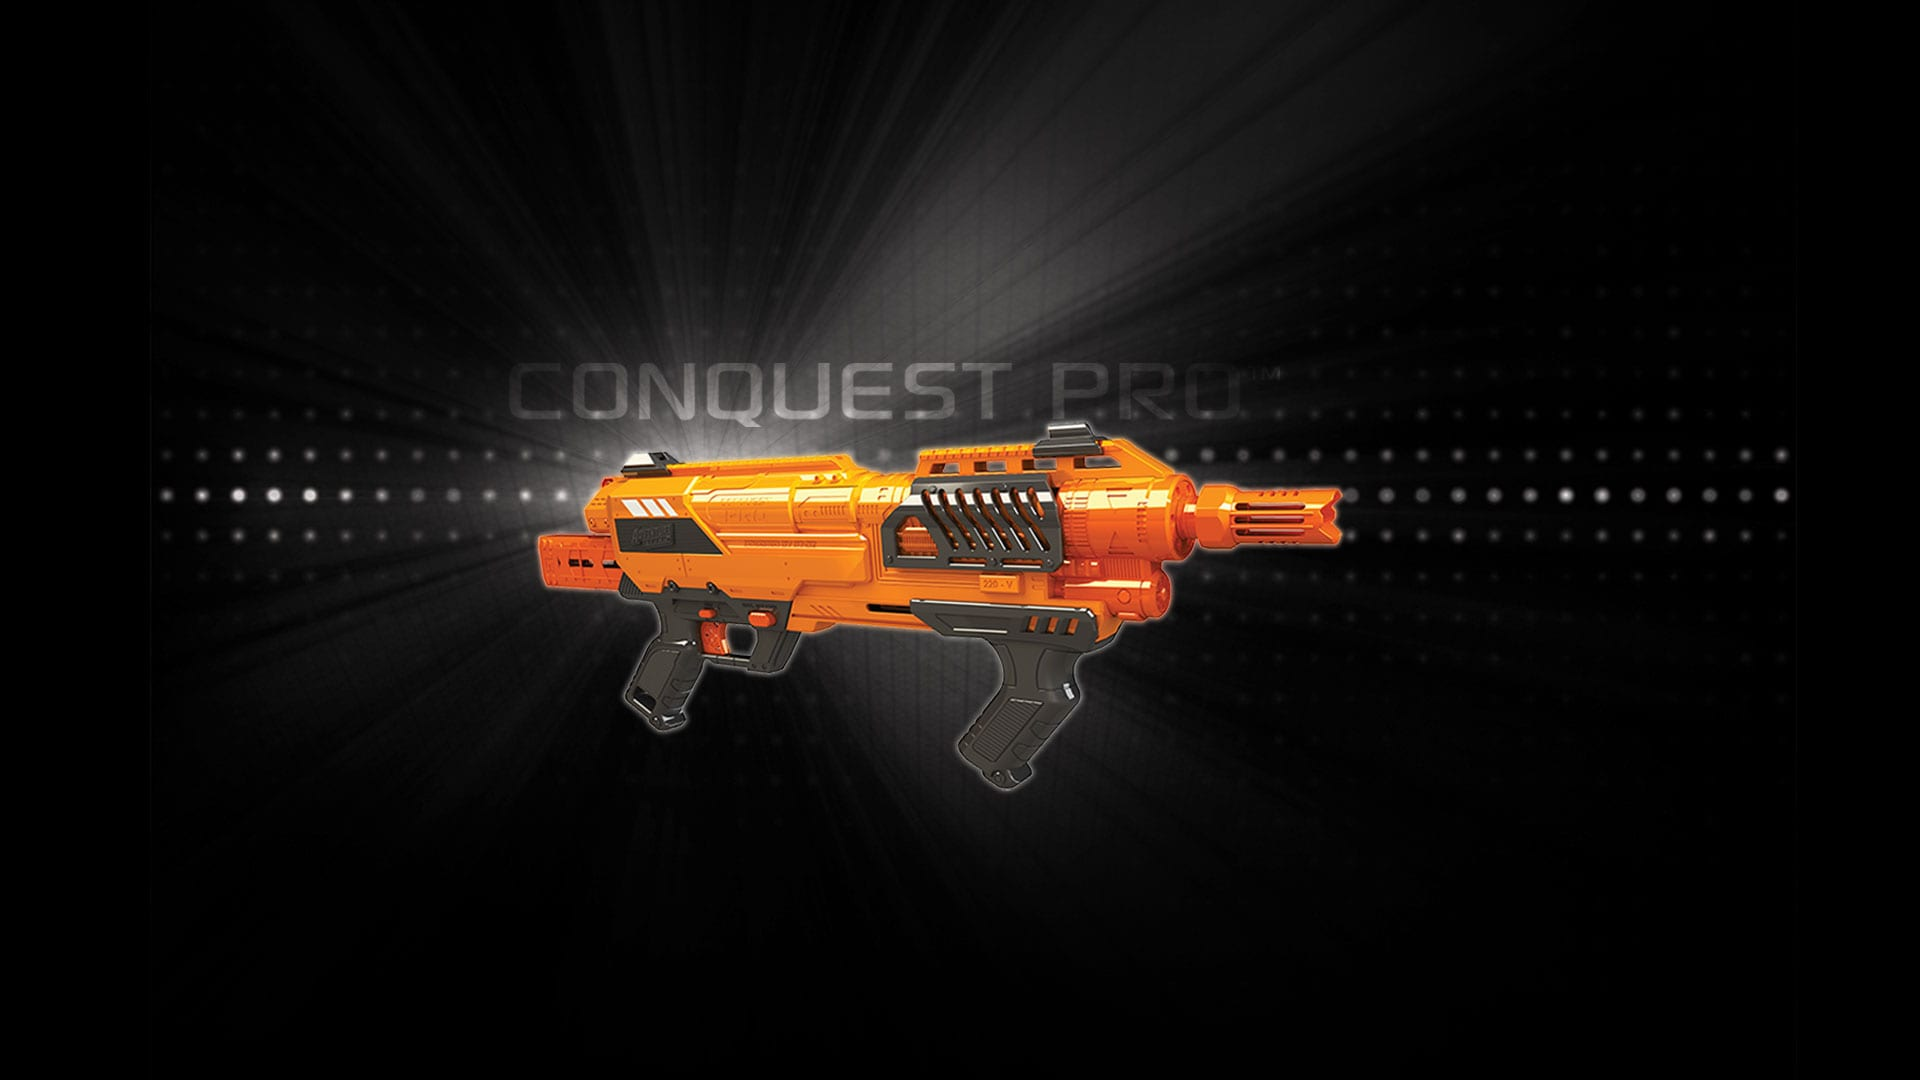 Adventure Force Conquest Pro Banner for Blog